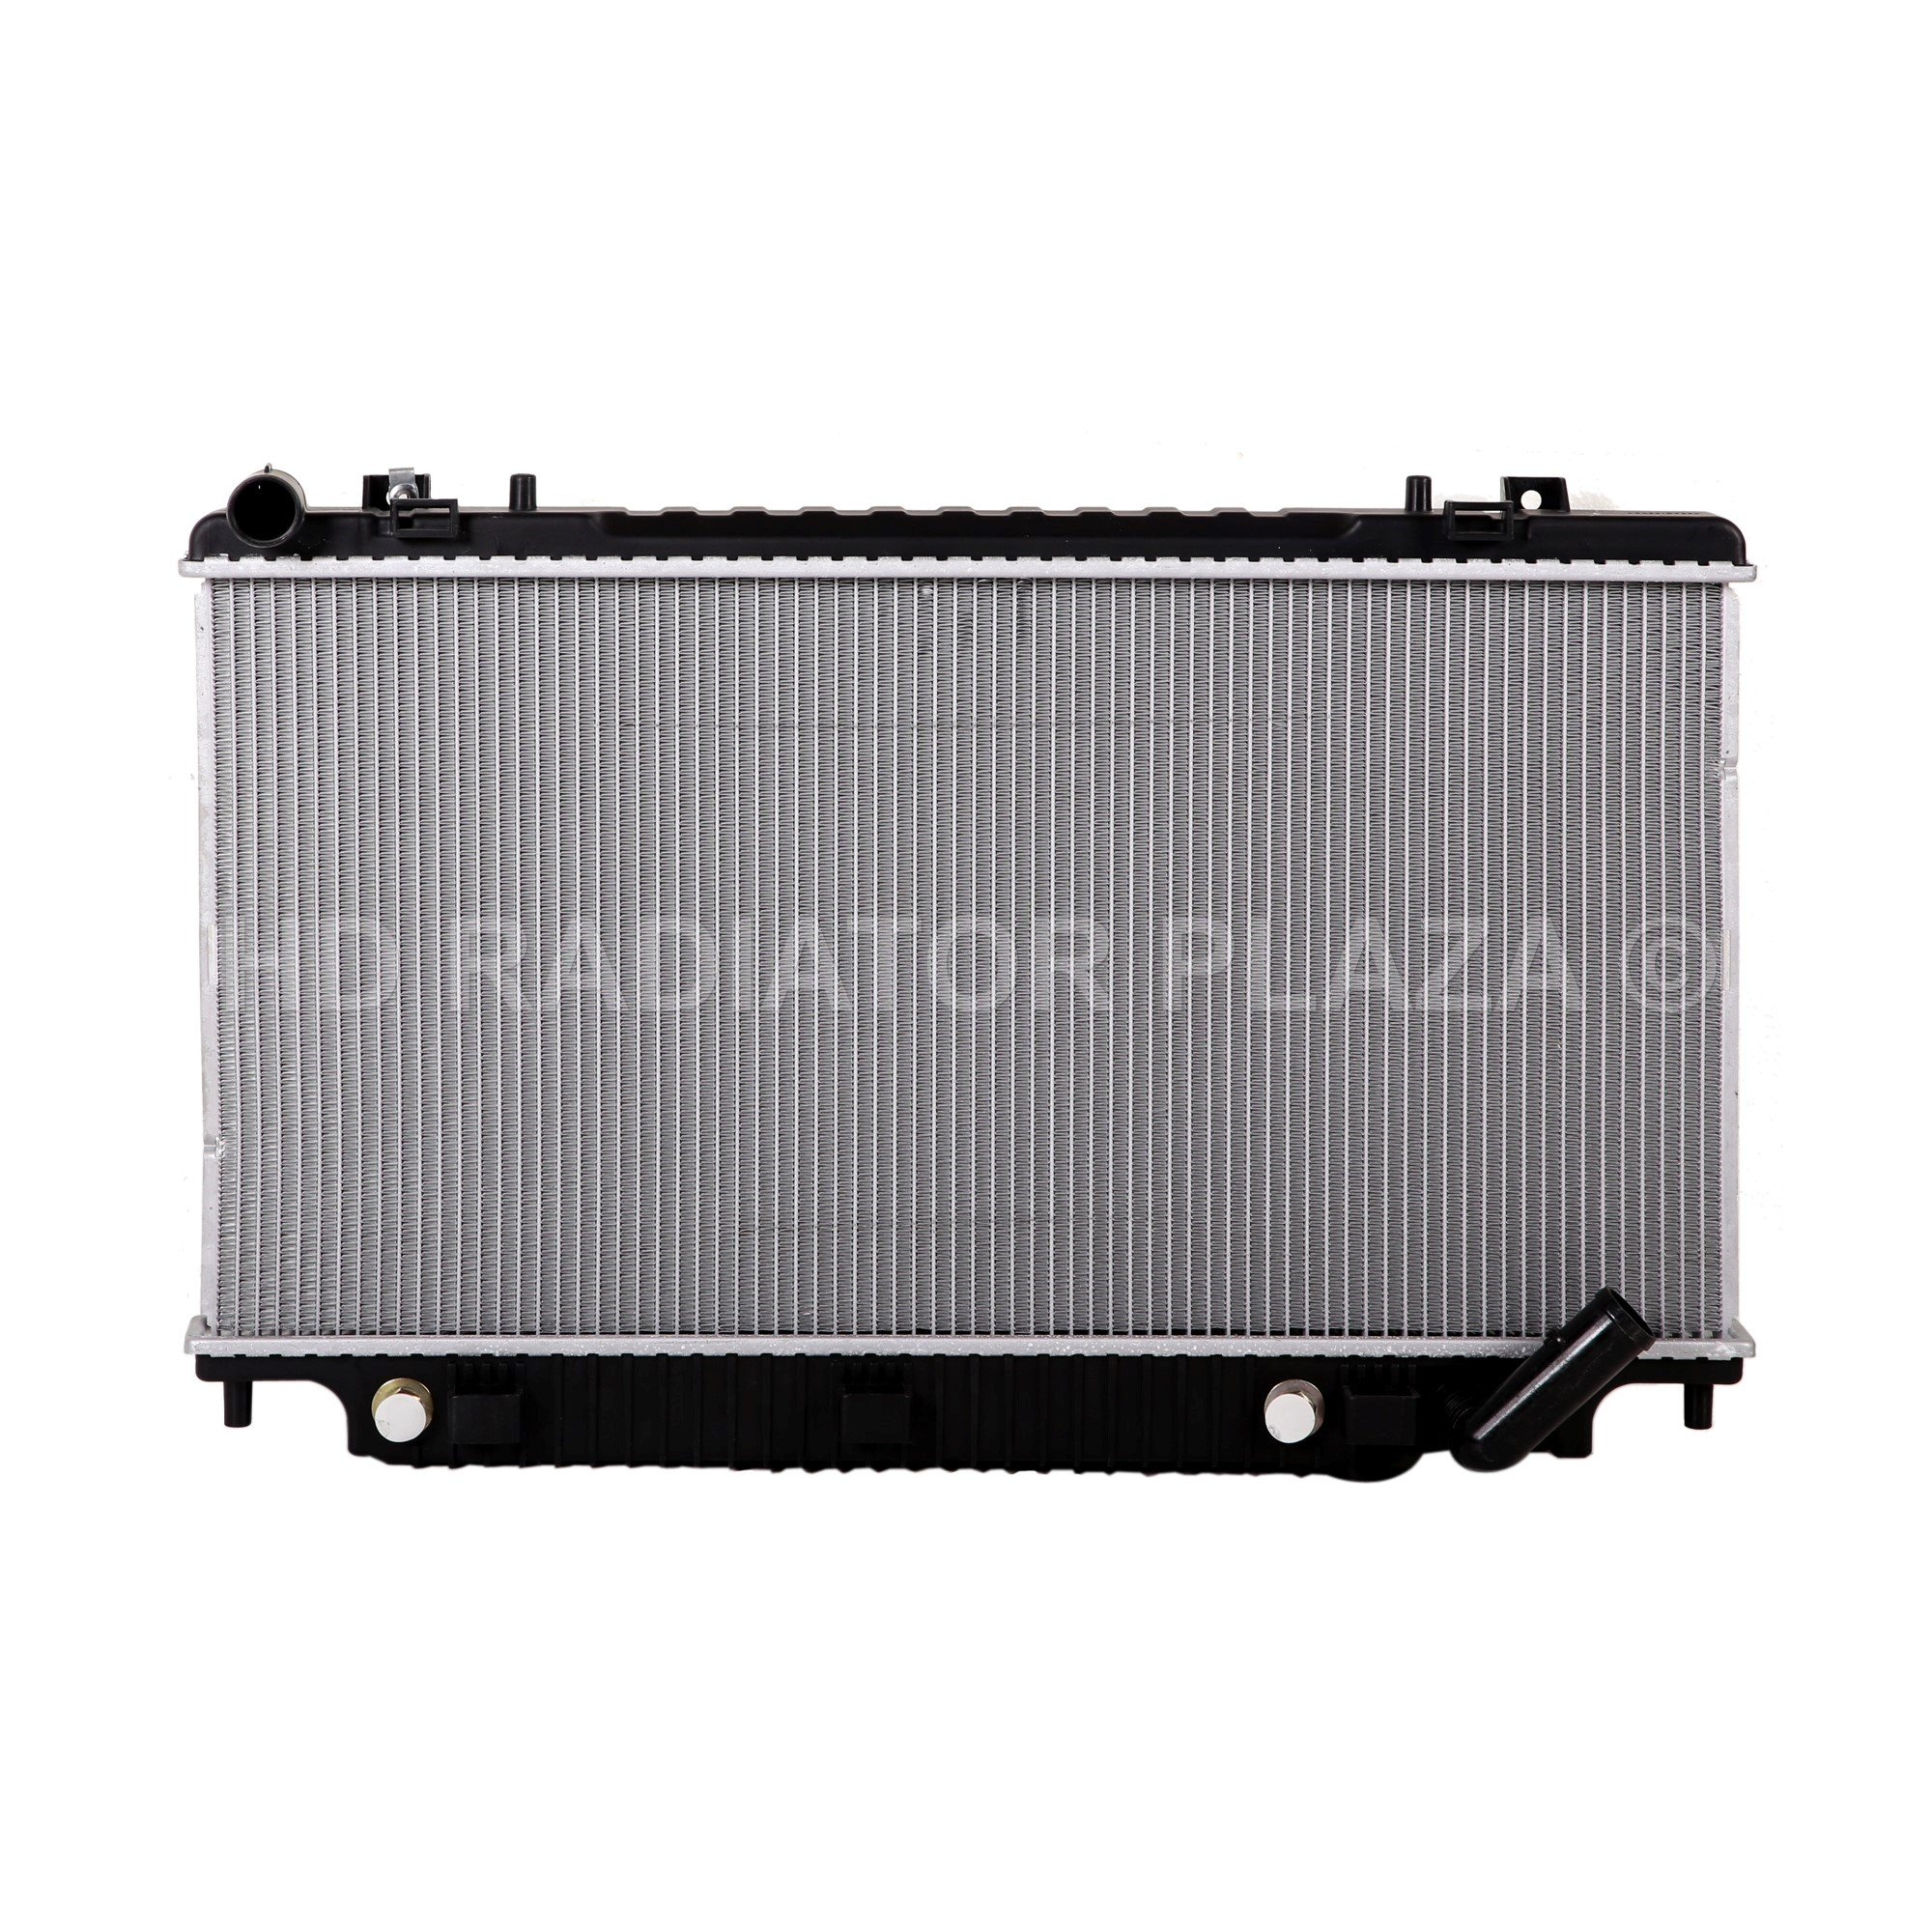 Radiator for 08-09 Pontiac G8 V6 3.6L